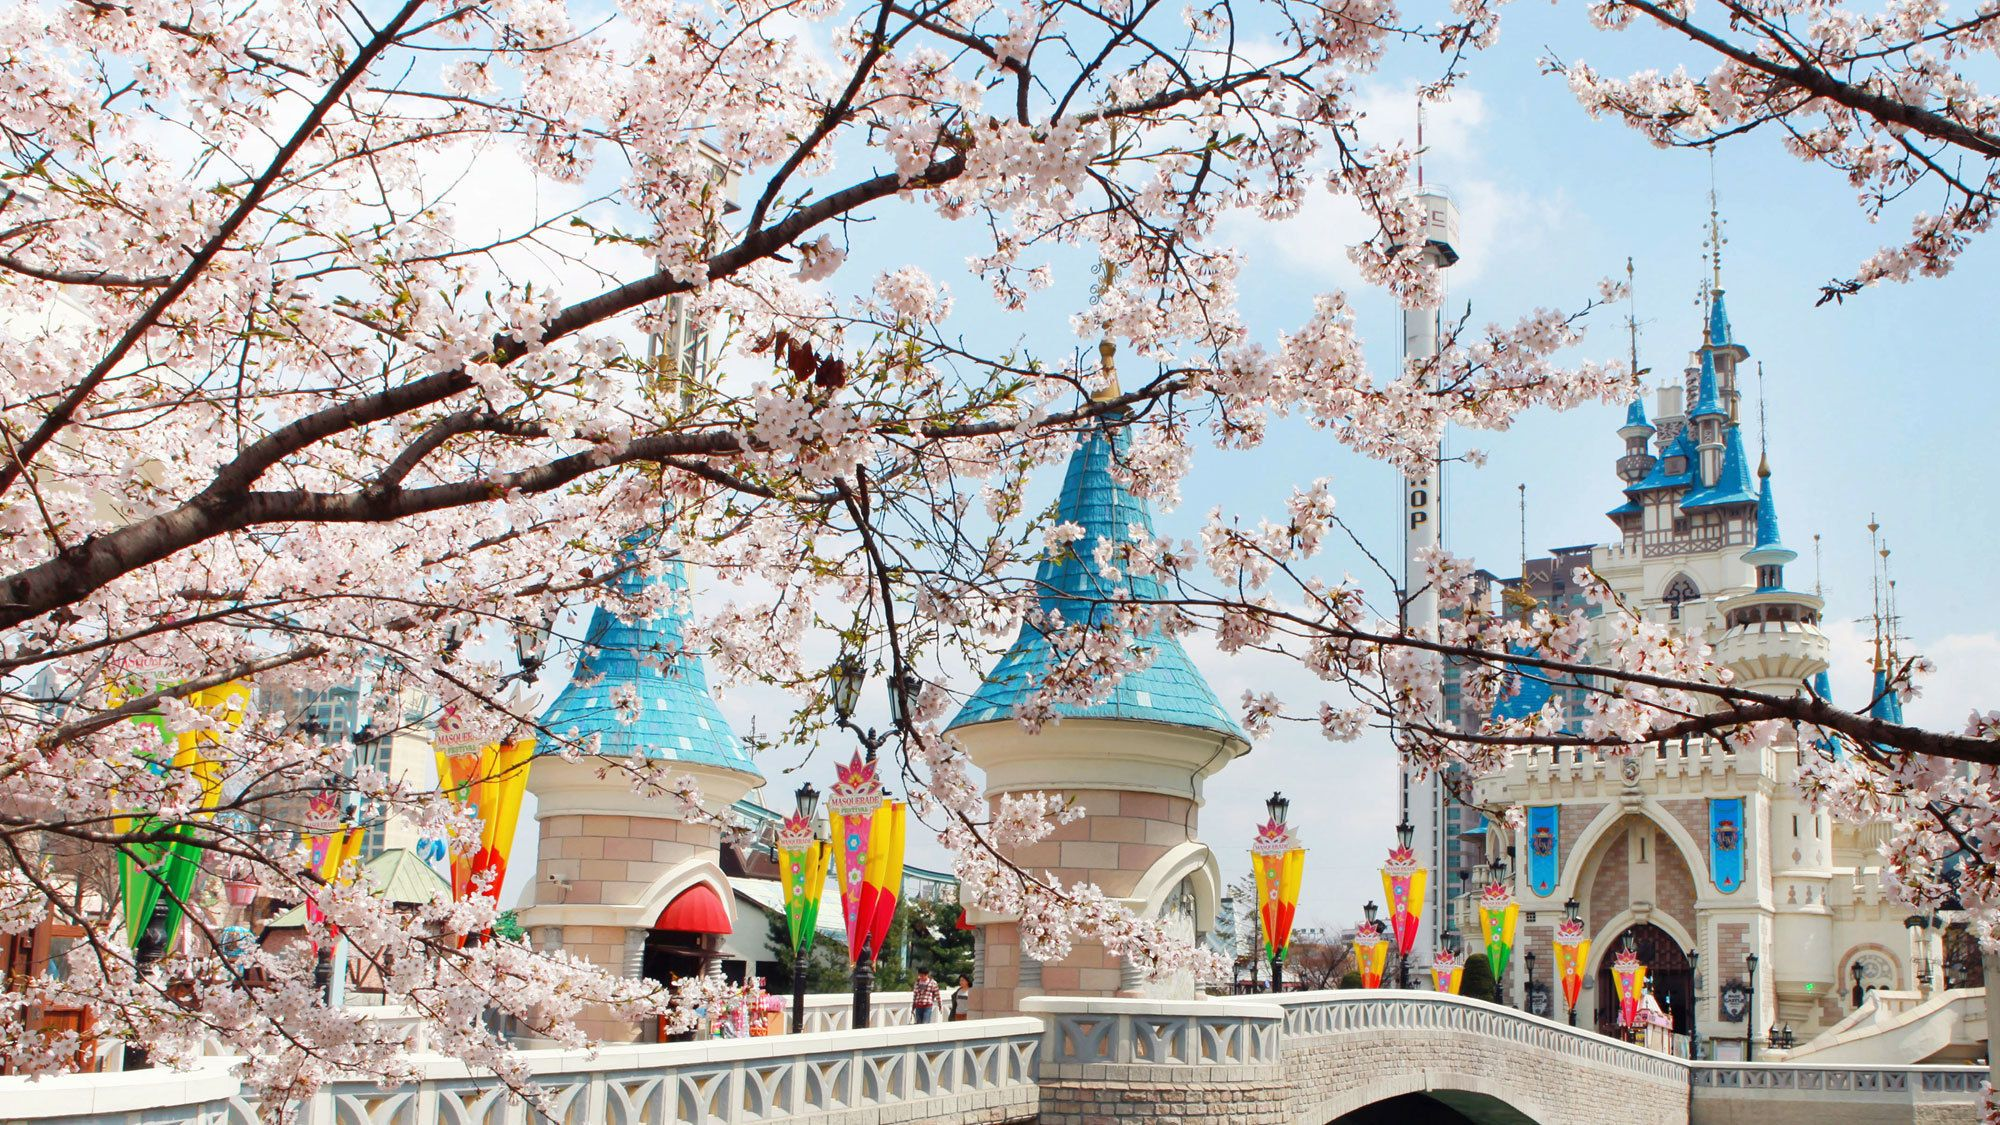 View of the castle at Lotte World Theme Park in Seoul